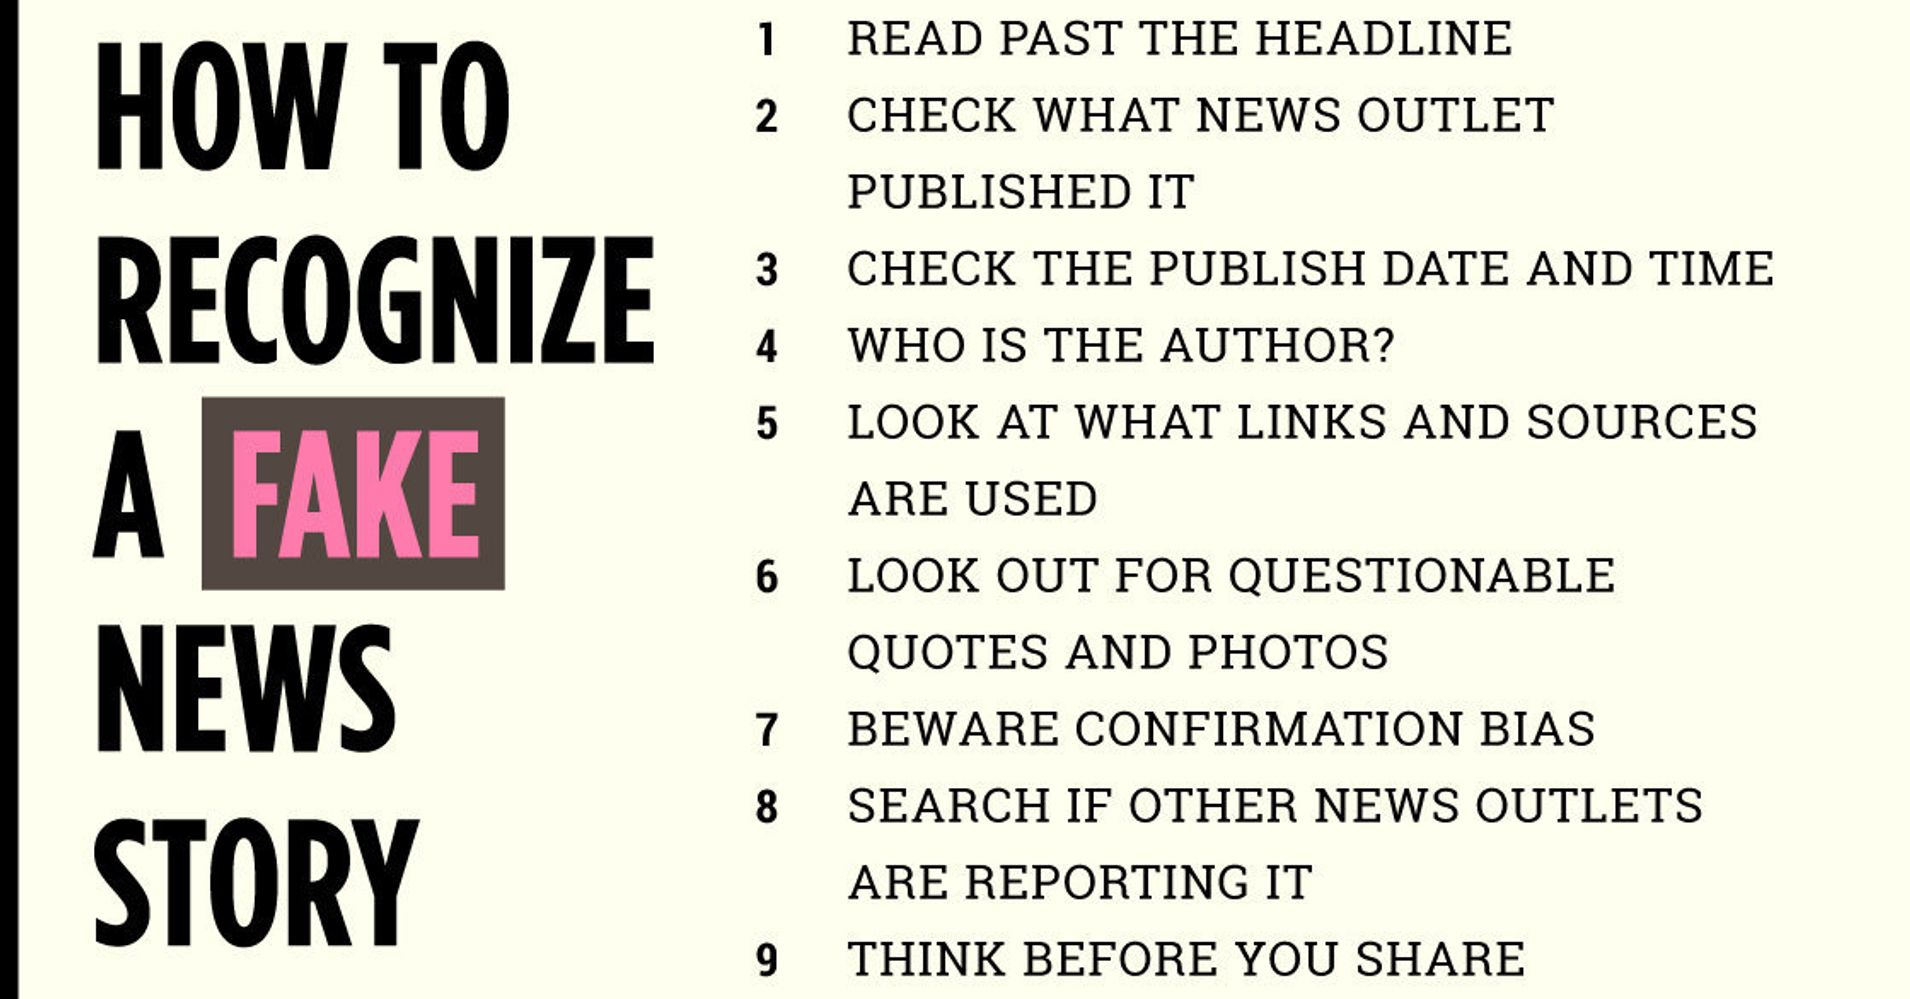 how to recognize a fake news story huffpost